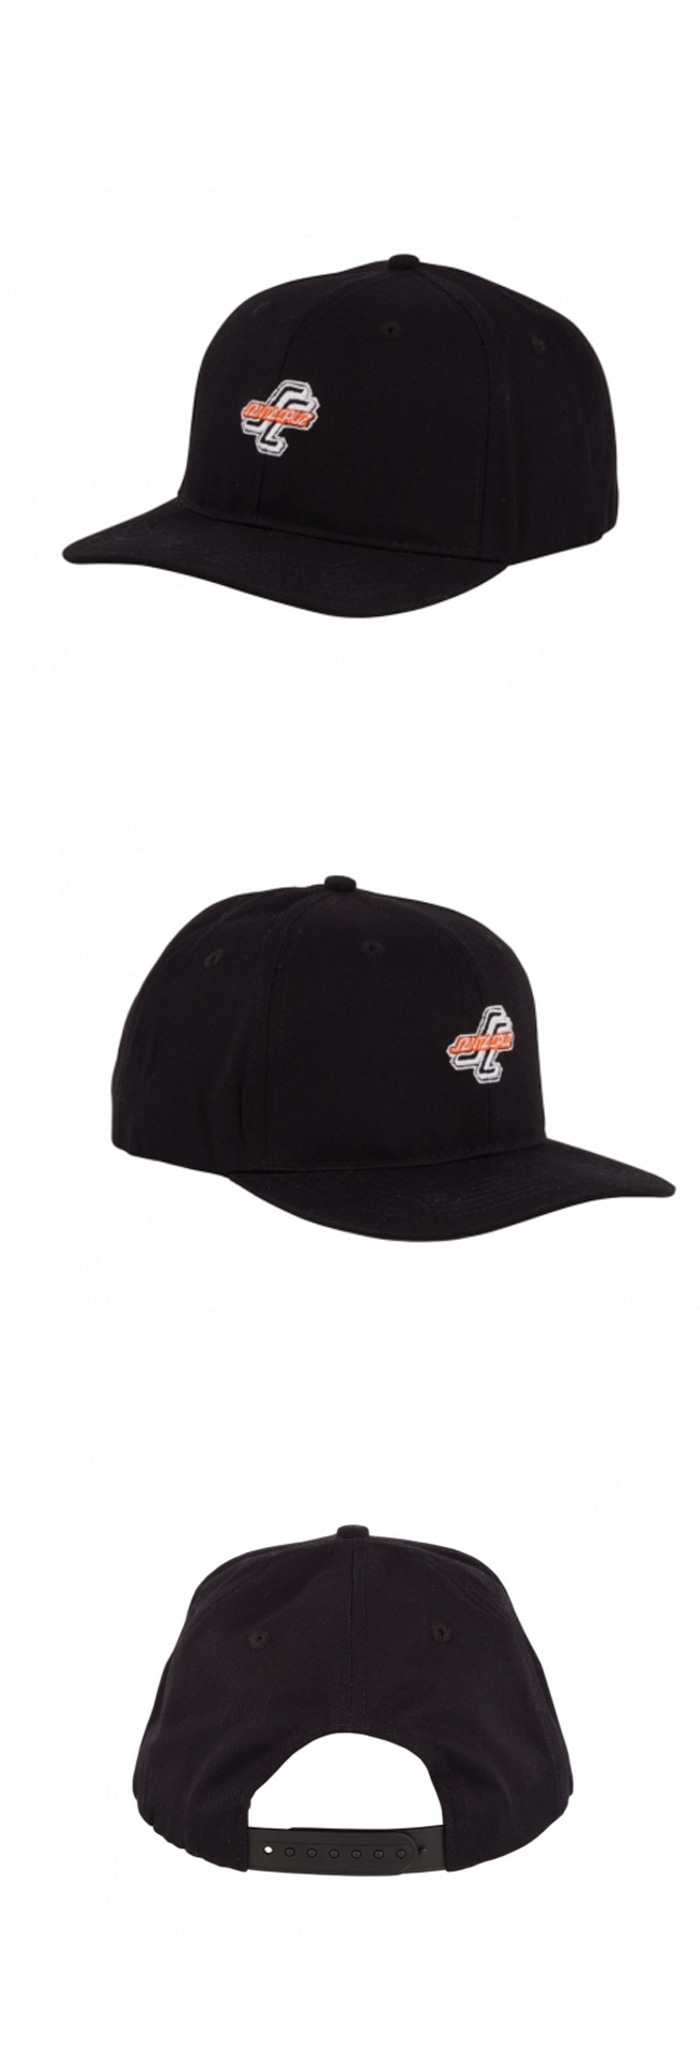 산타크루즈(SANTA CRUZ) OGSC Mini Hat - Black